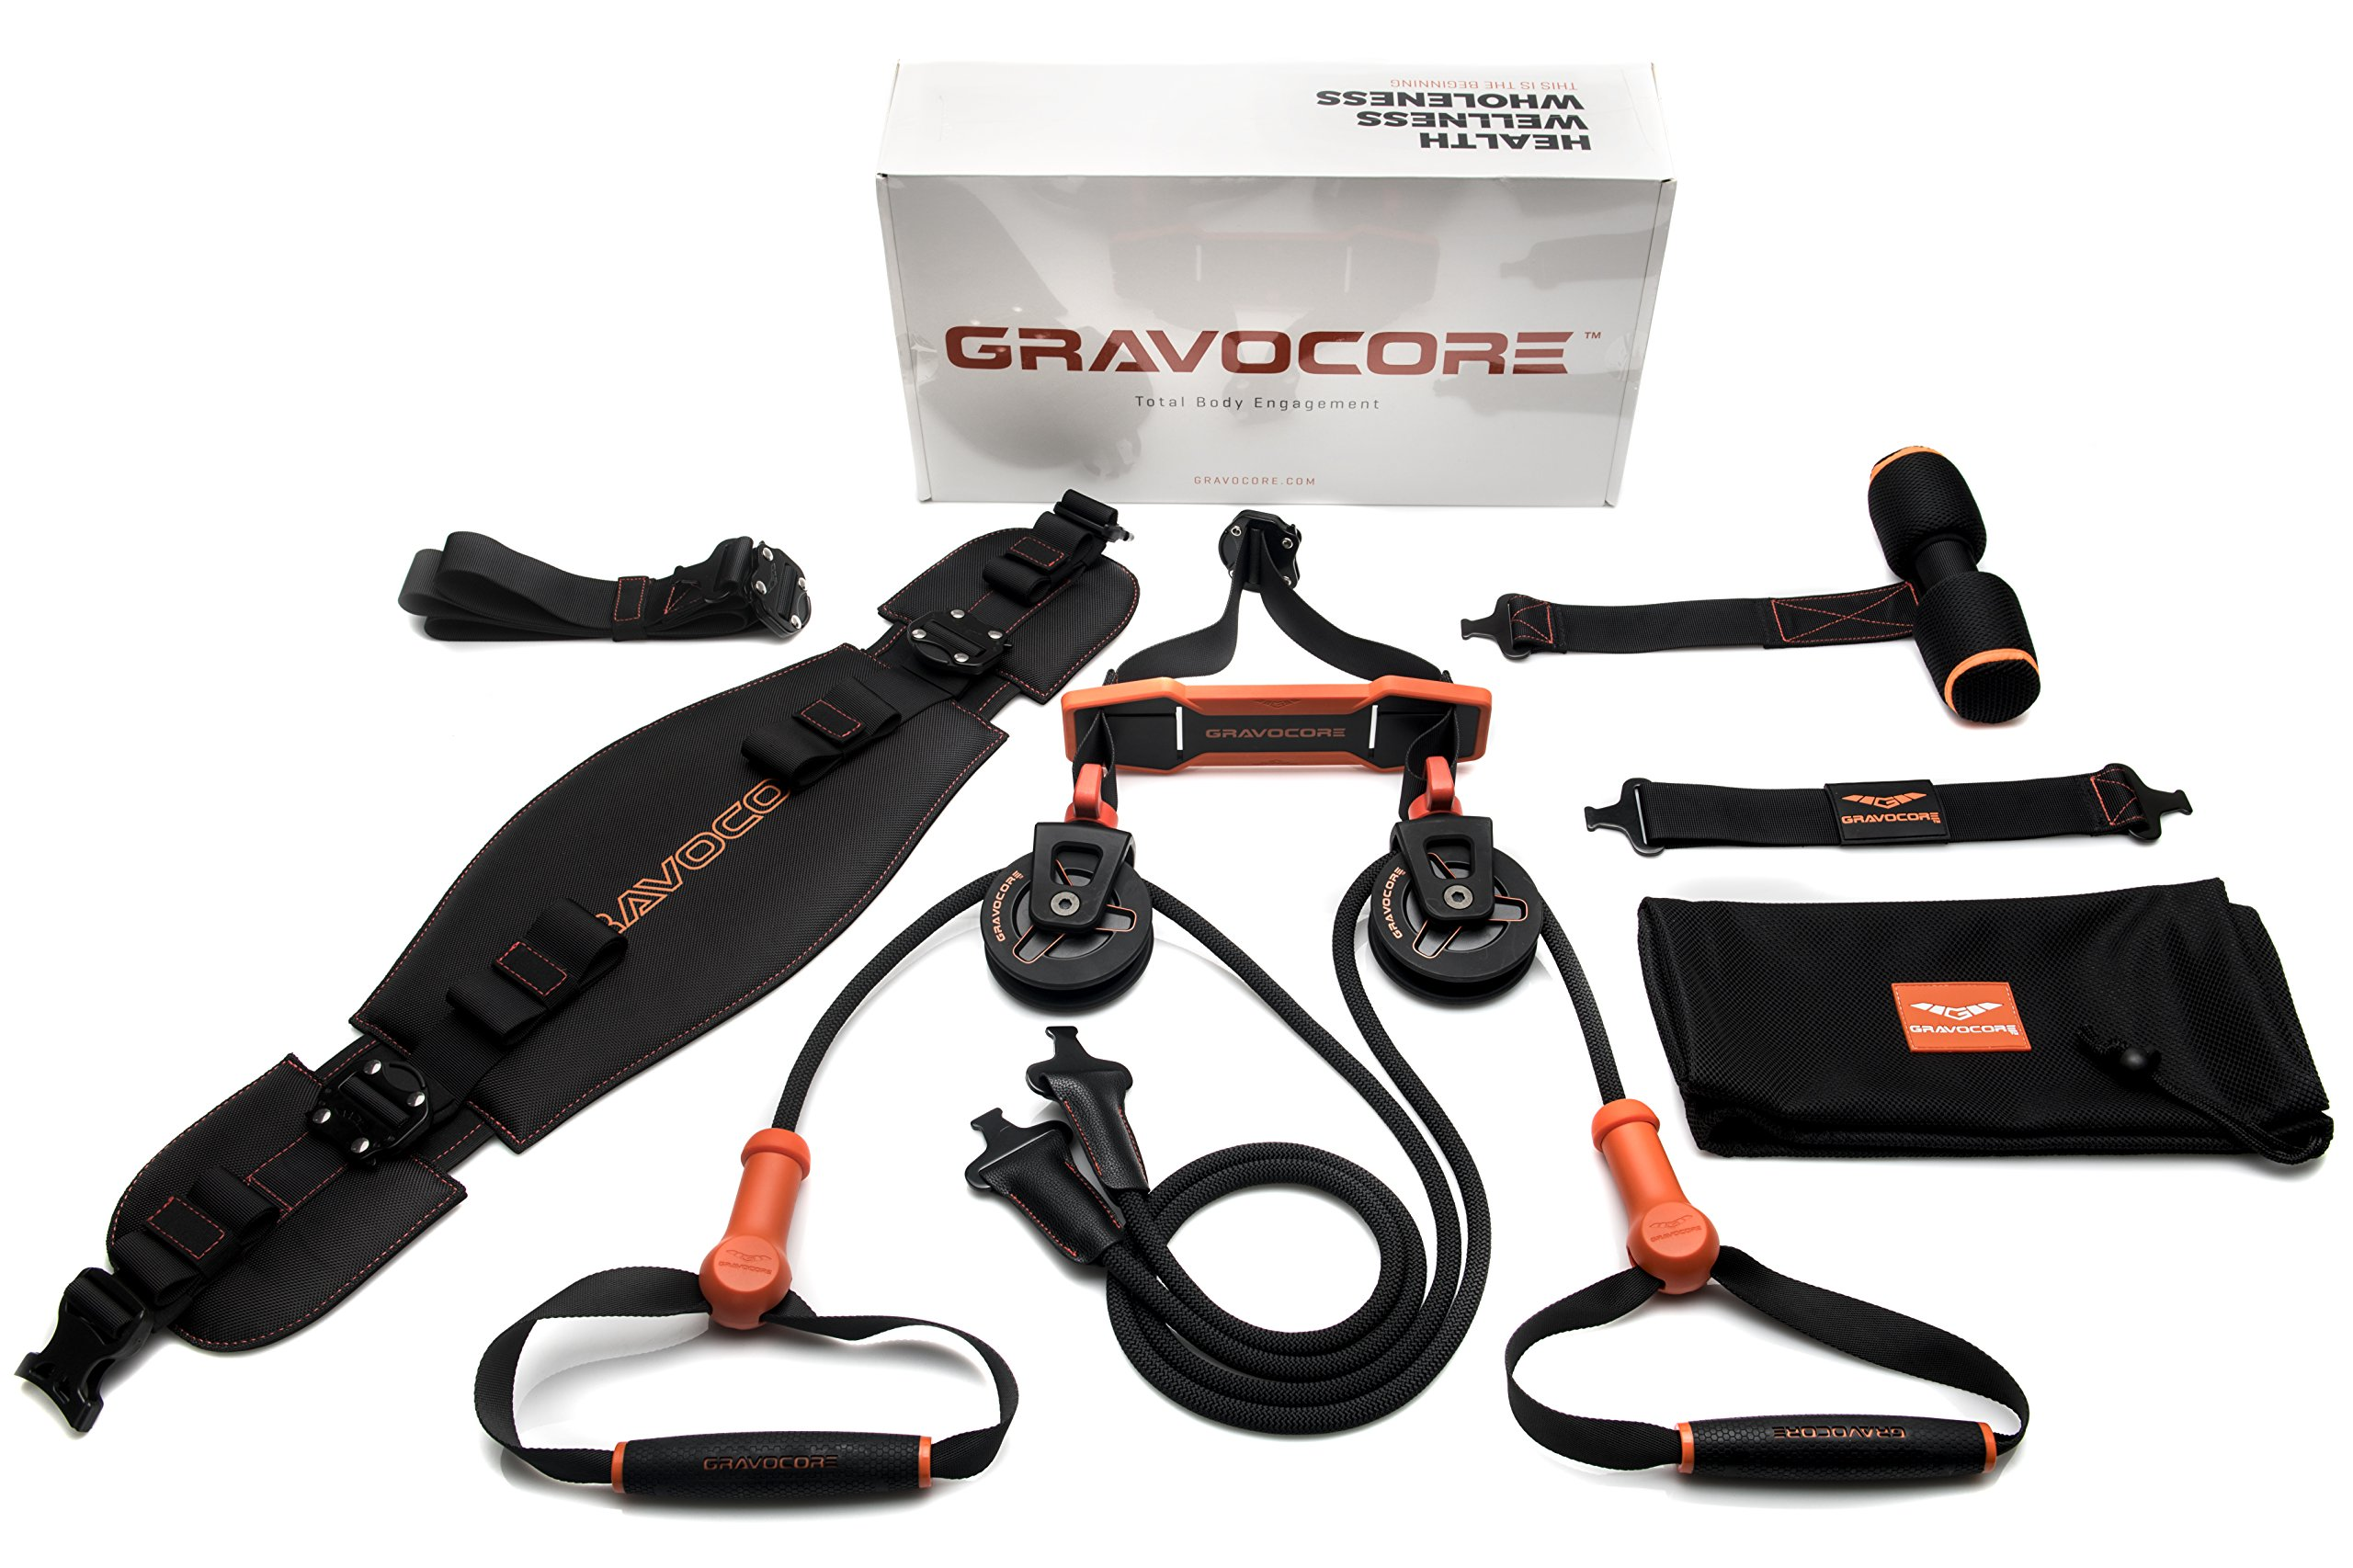 GravocoreRevolutionary Training Machine | Build Muscle & Burn Fat | Portable & Lightweight | Workout InLess Time |Variable Intensity Routines| Easier On Joints & Back | Digital Workouts Included by Gravocore